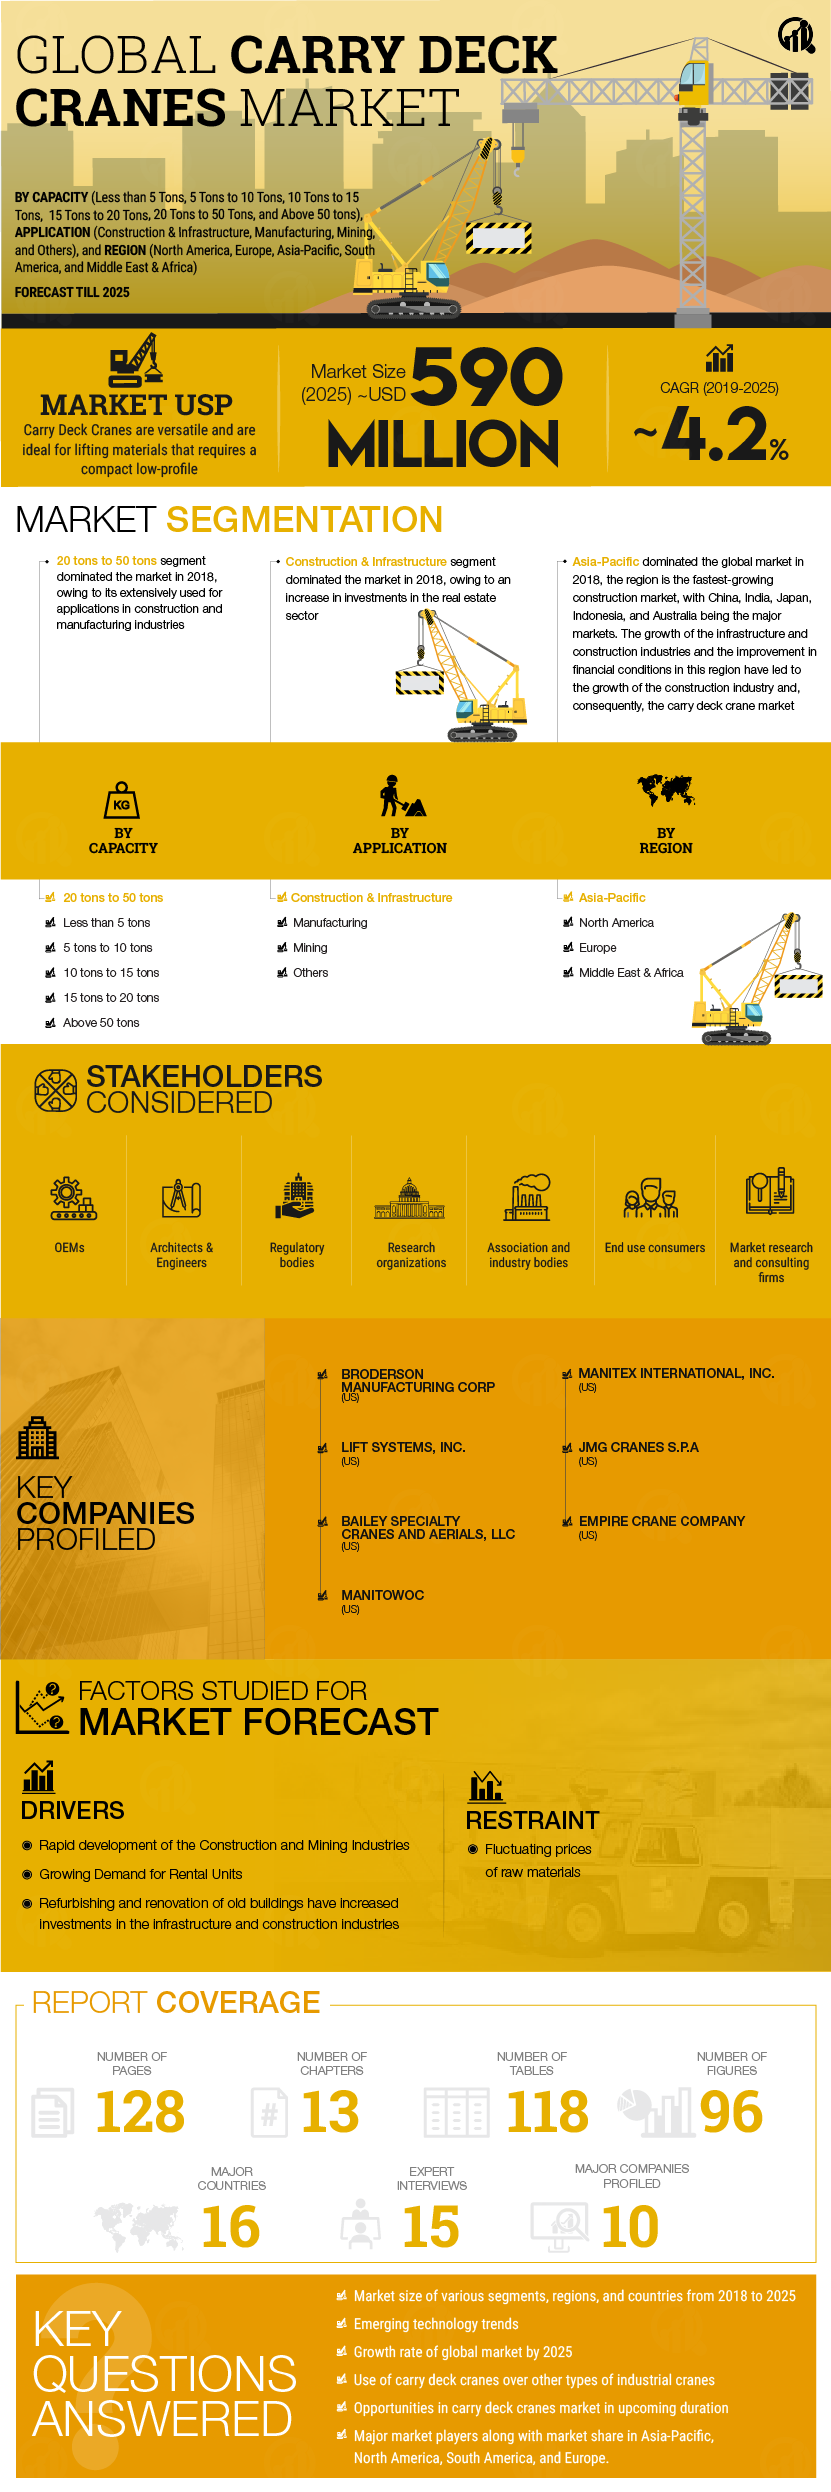 Carry Deck Industrial Cranes Market 2019 Global Trends, Market Share, Industry Size, Growth, Sales, Opportunities, and Market Forecast to 2025